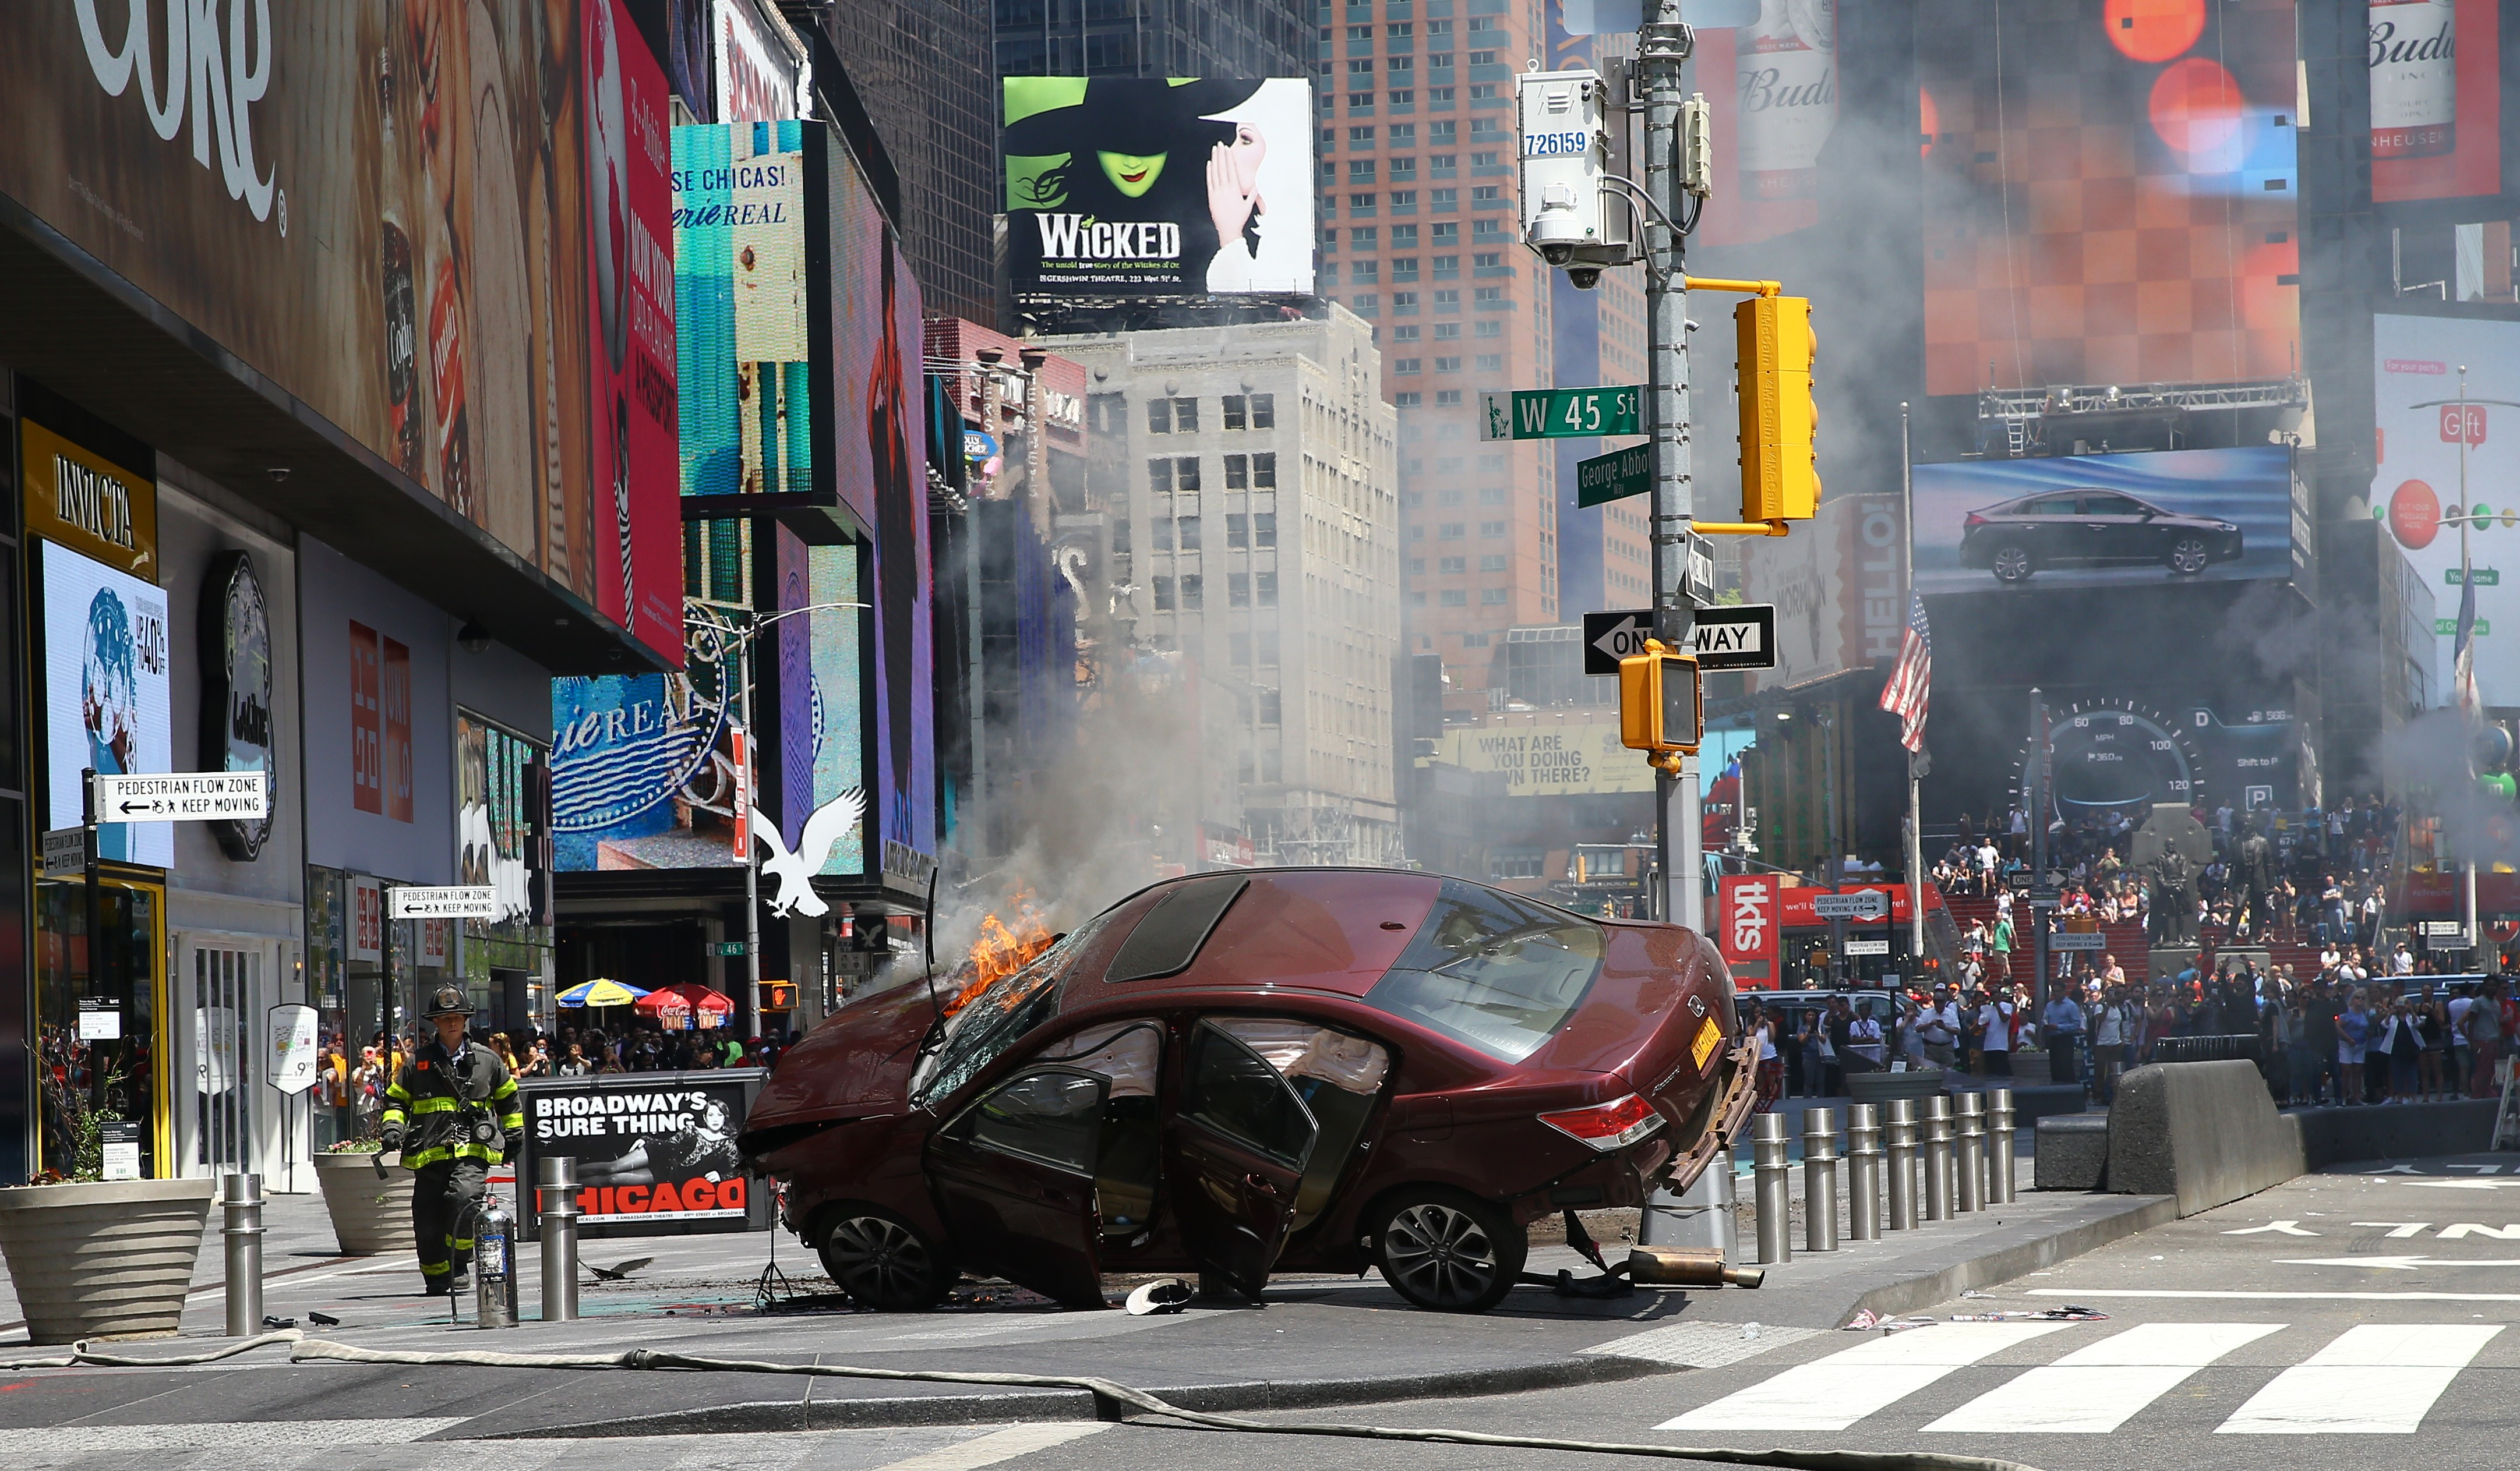 Flames and smoke rise from a wrecked vehicle after it plowed into pedestrians on a busy sidewalk on the corner of West 45th St. and Broadway at Times Square in New York on May 18, 2017.